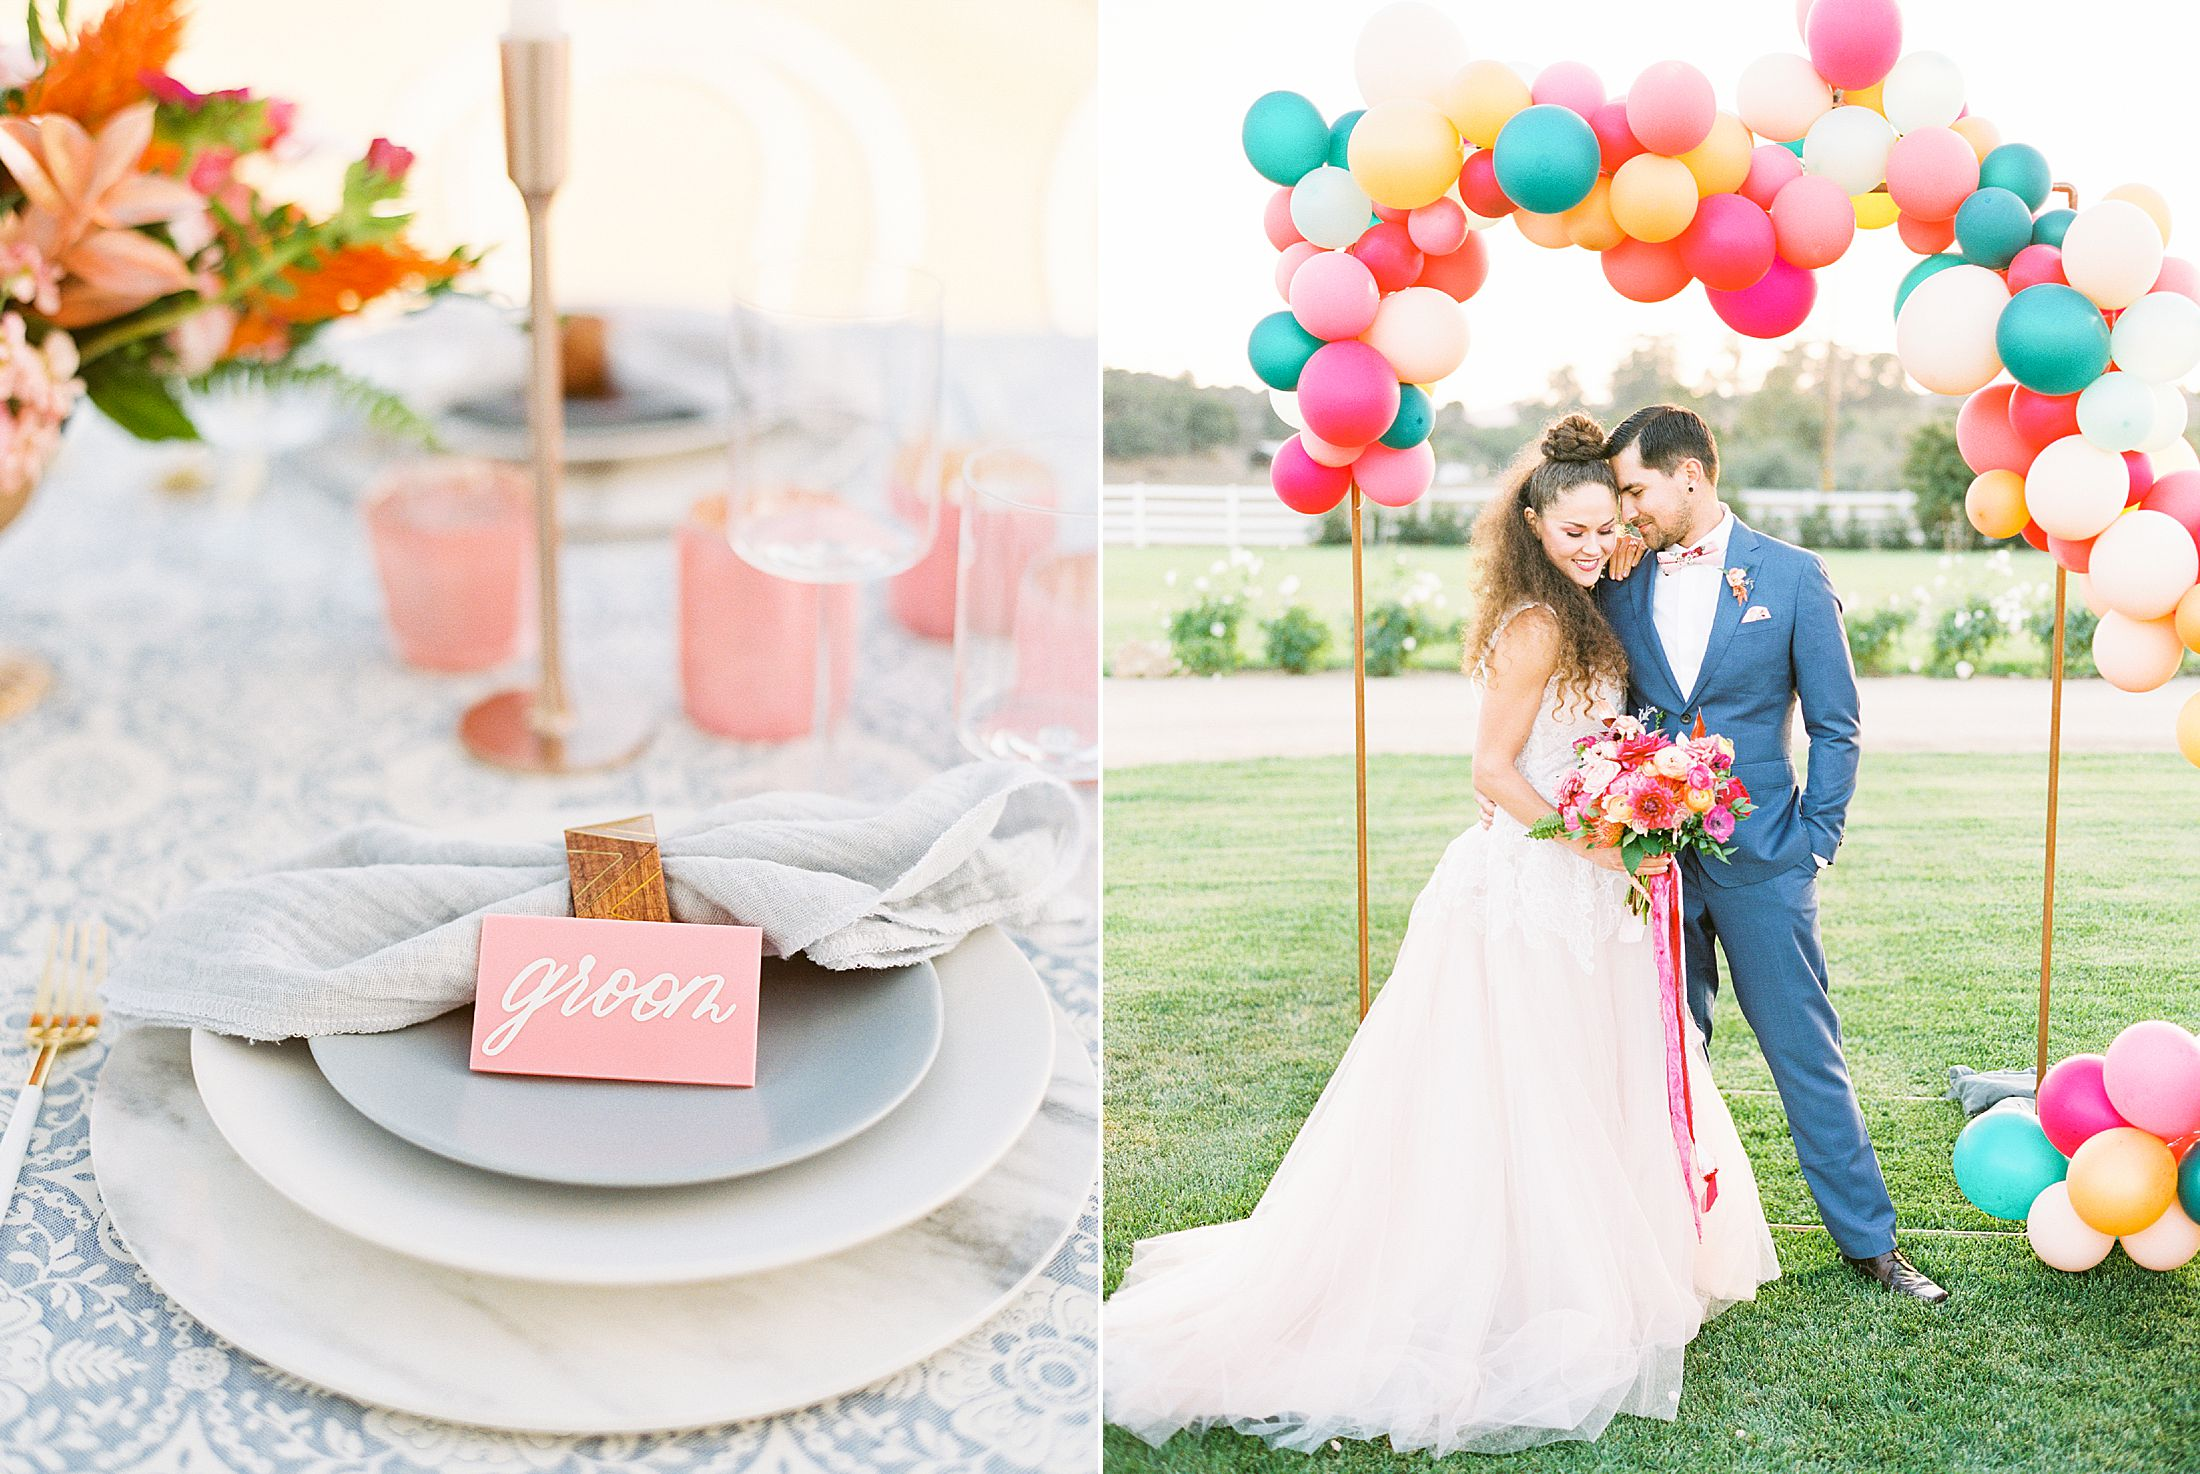 White Barn Edna Valley Wedding Inspiration - San Luis Obispo Wedding - Featured on Green Wedding Shoes - Ashley Baumgartner - FM Events SLO - SLO Wedding Photographer_0077.jpg